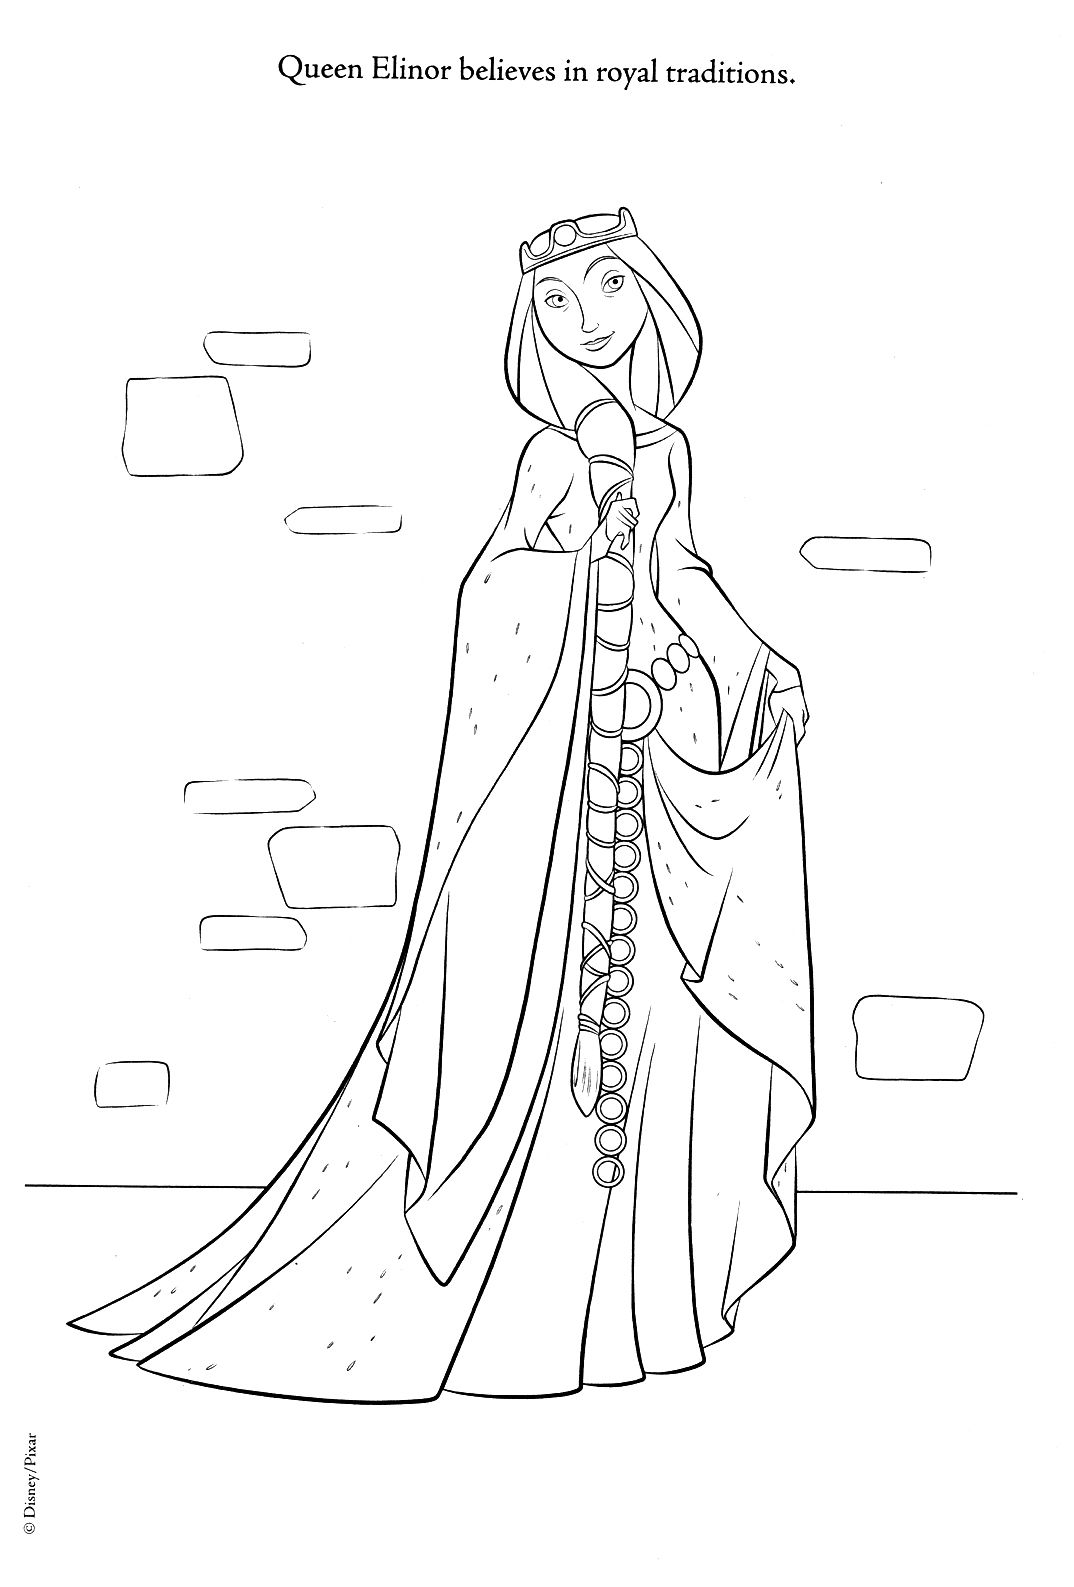 Brave coloring pages - brave Photo Queen Elinor | JG\'s very Brave ...